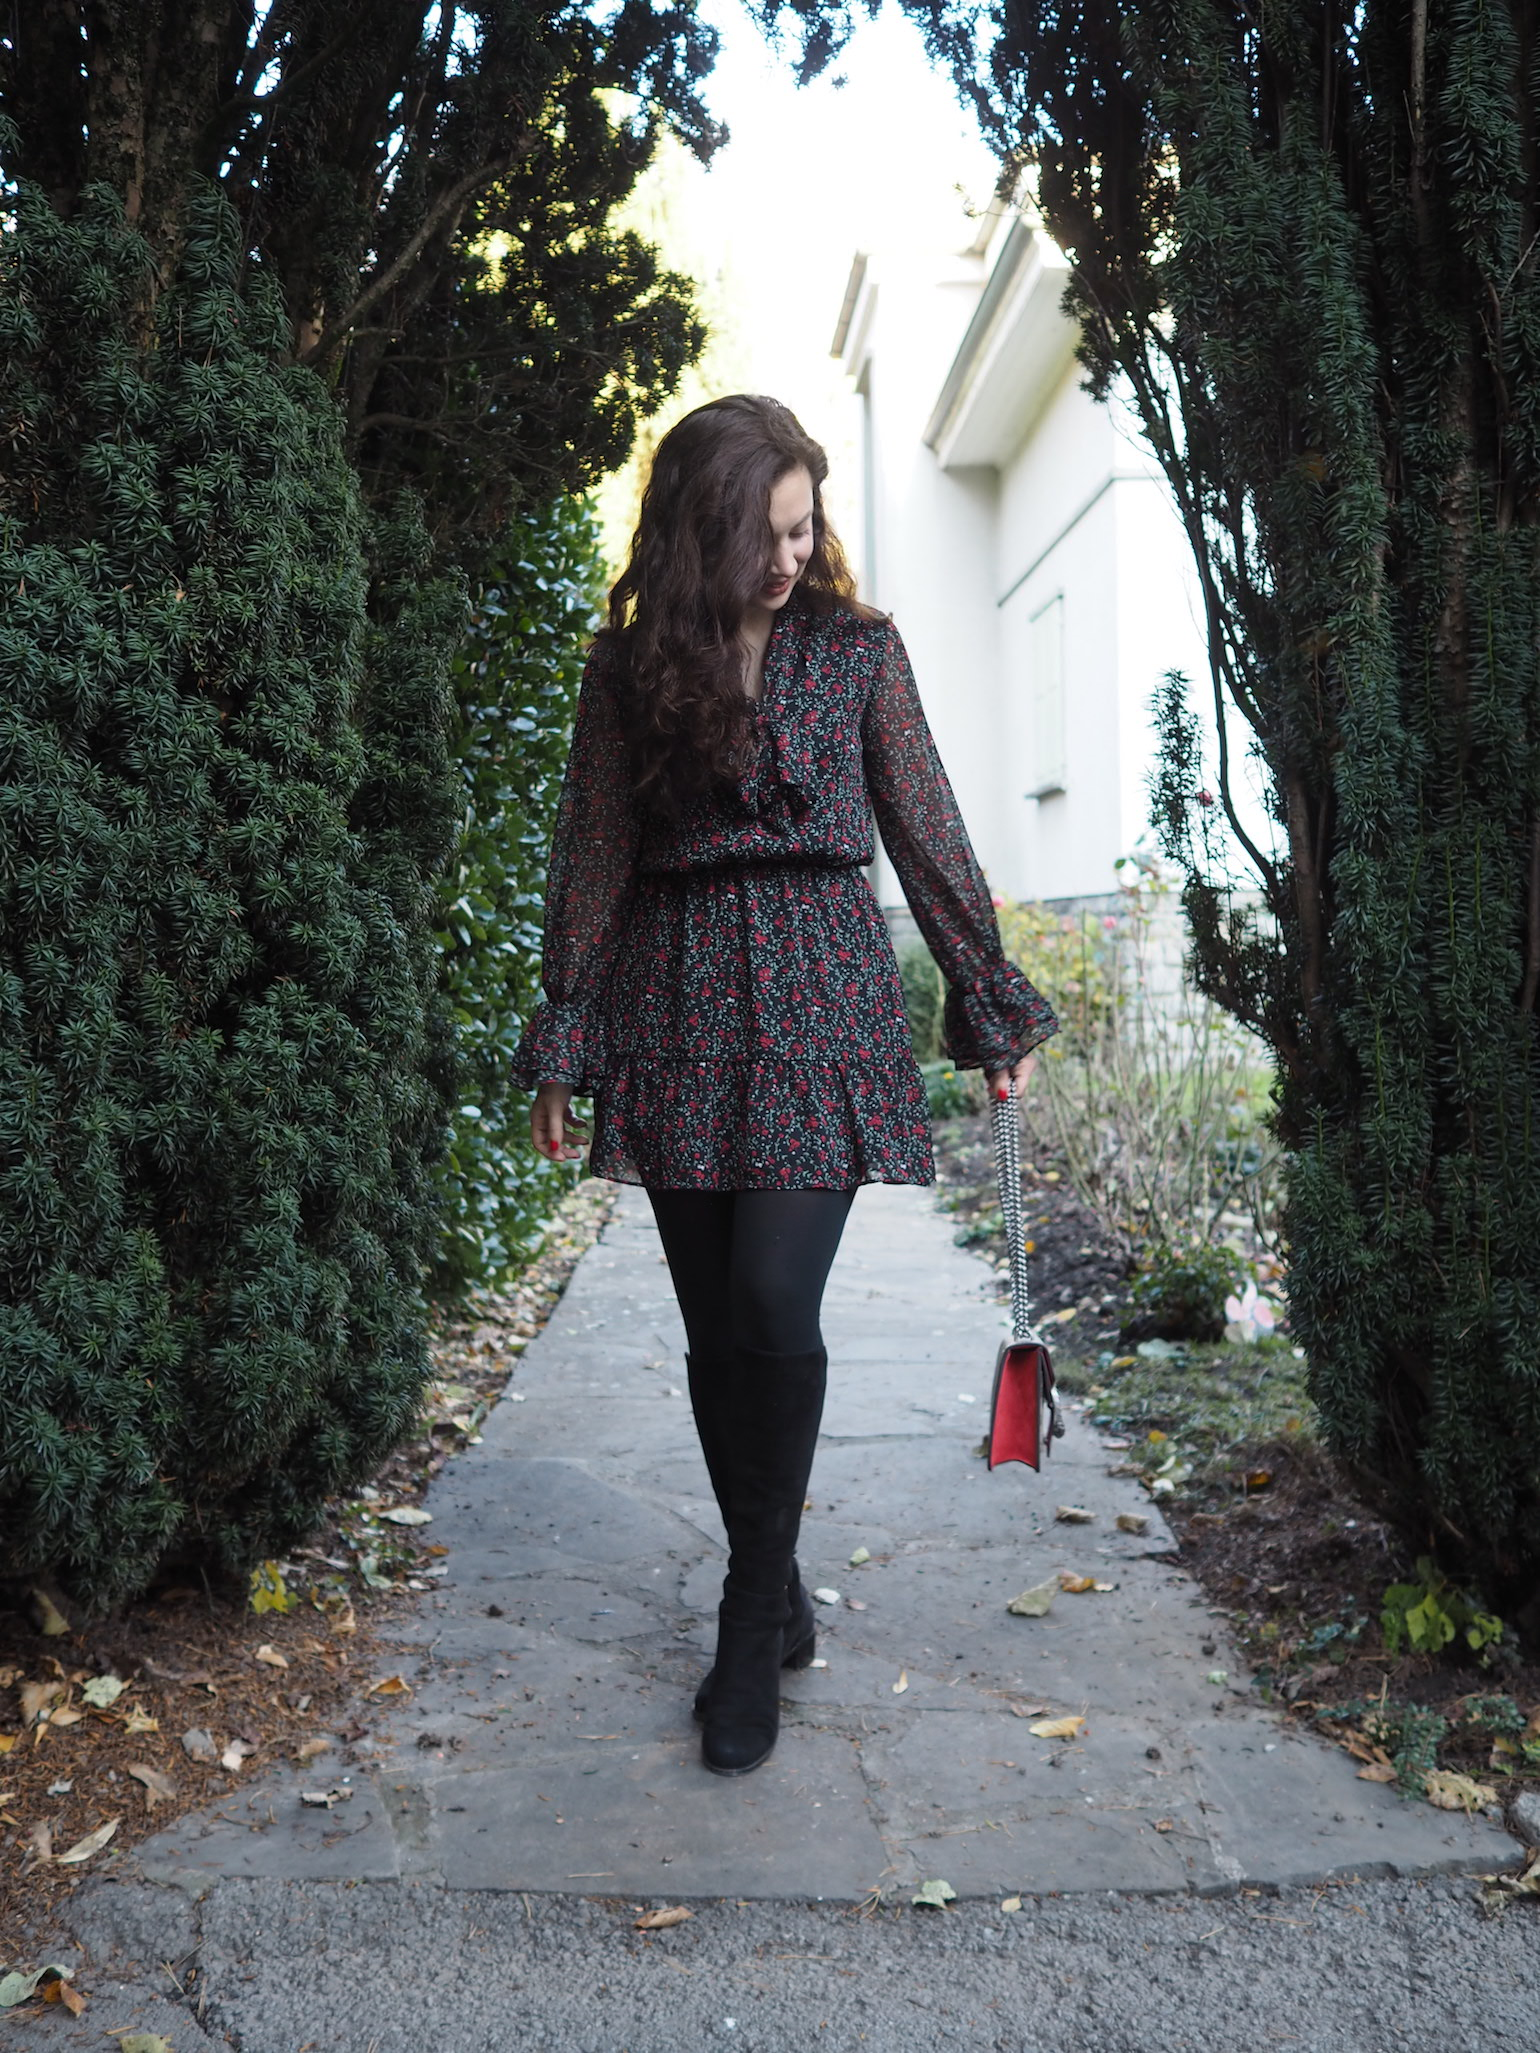 Winter Mini Dress, Stuart Weitzman Boots, Gucci Dionysus